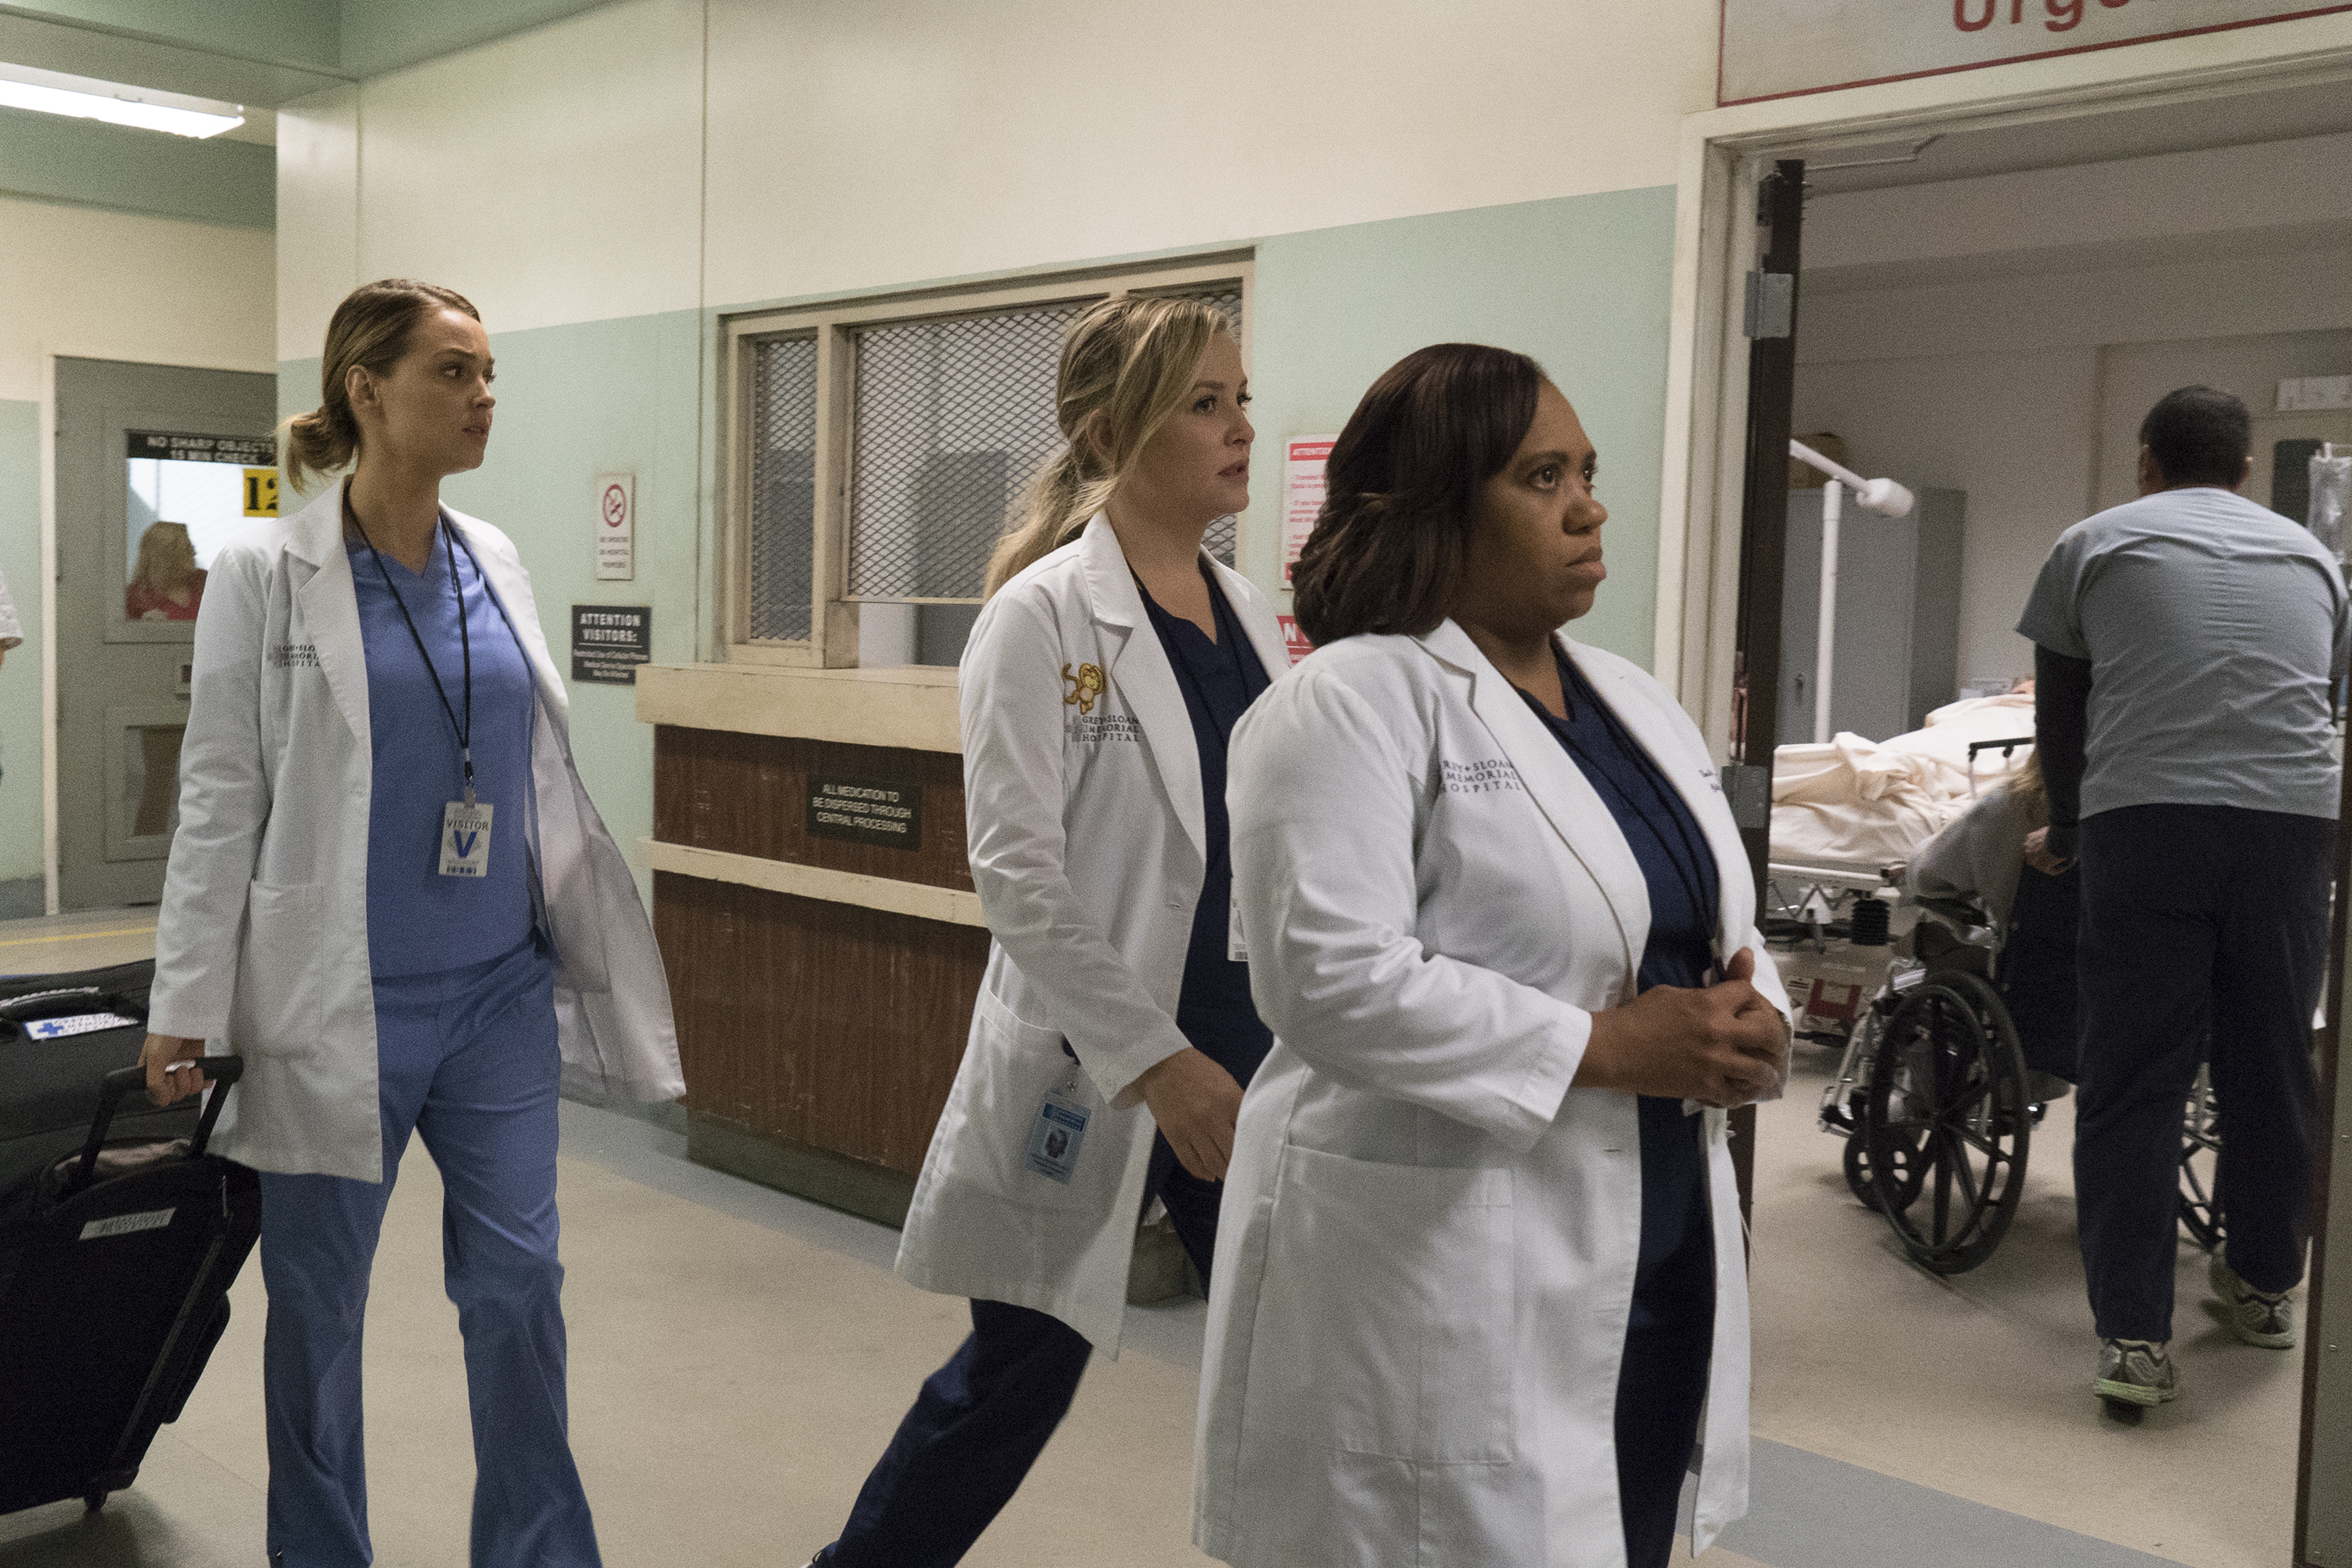 Grey\'s Anatomy Season 13 Recap: Episode 10 - Jo, What Did You Do?!?